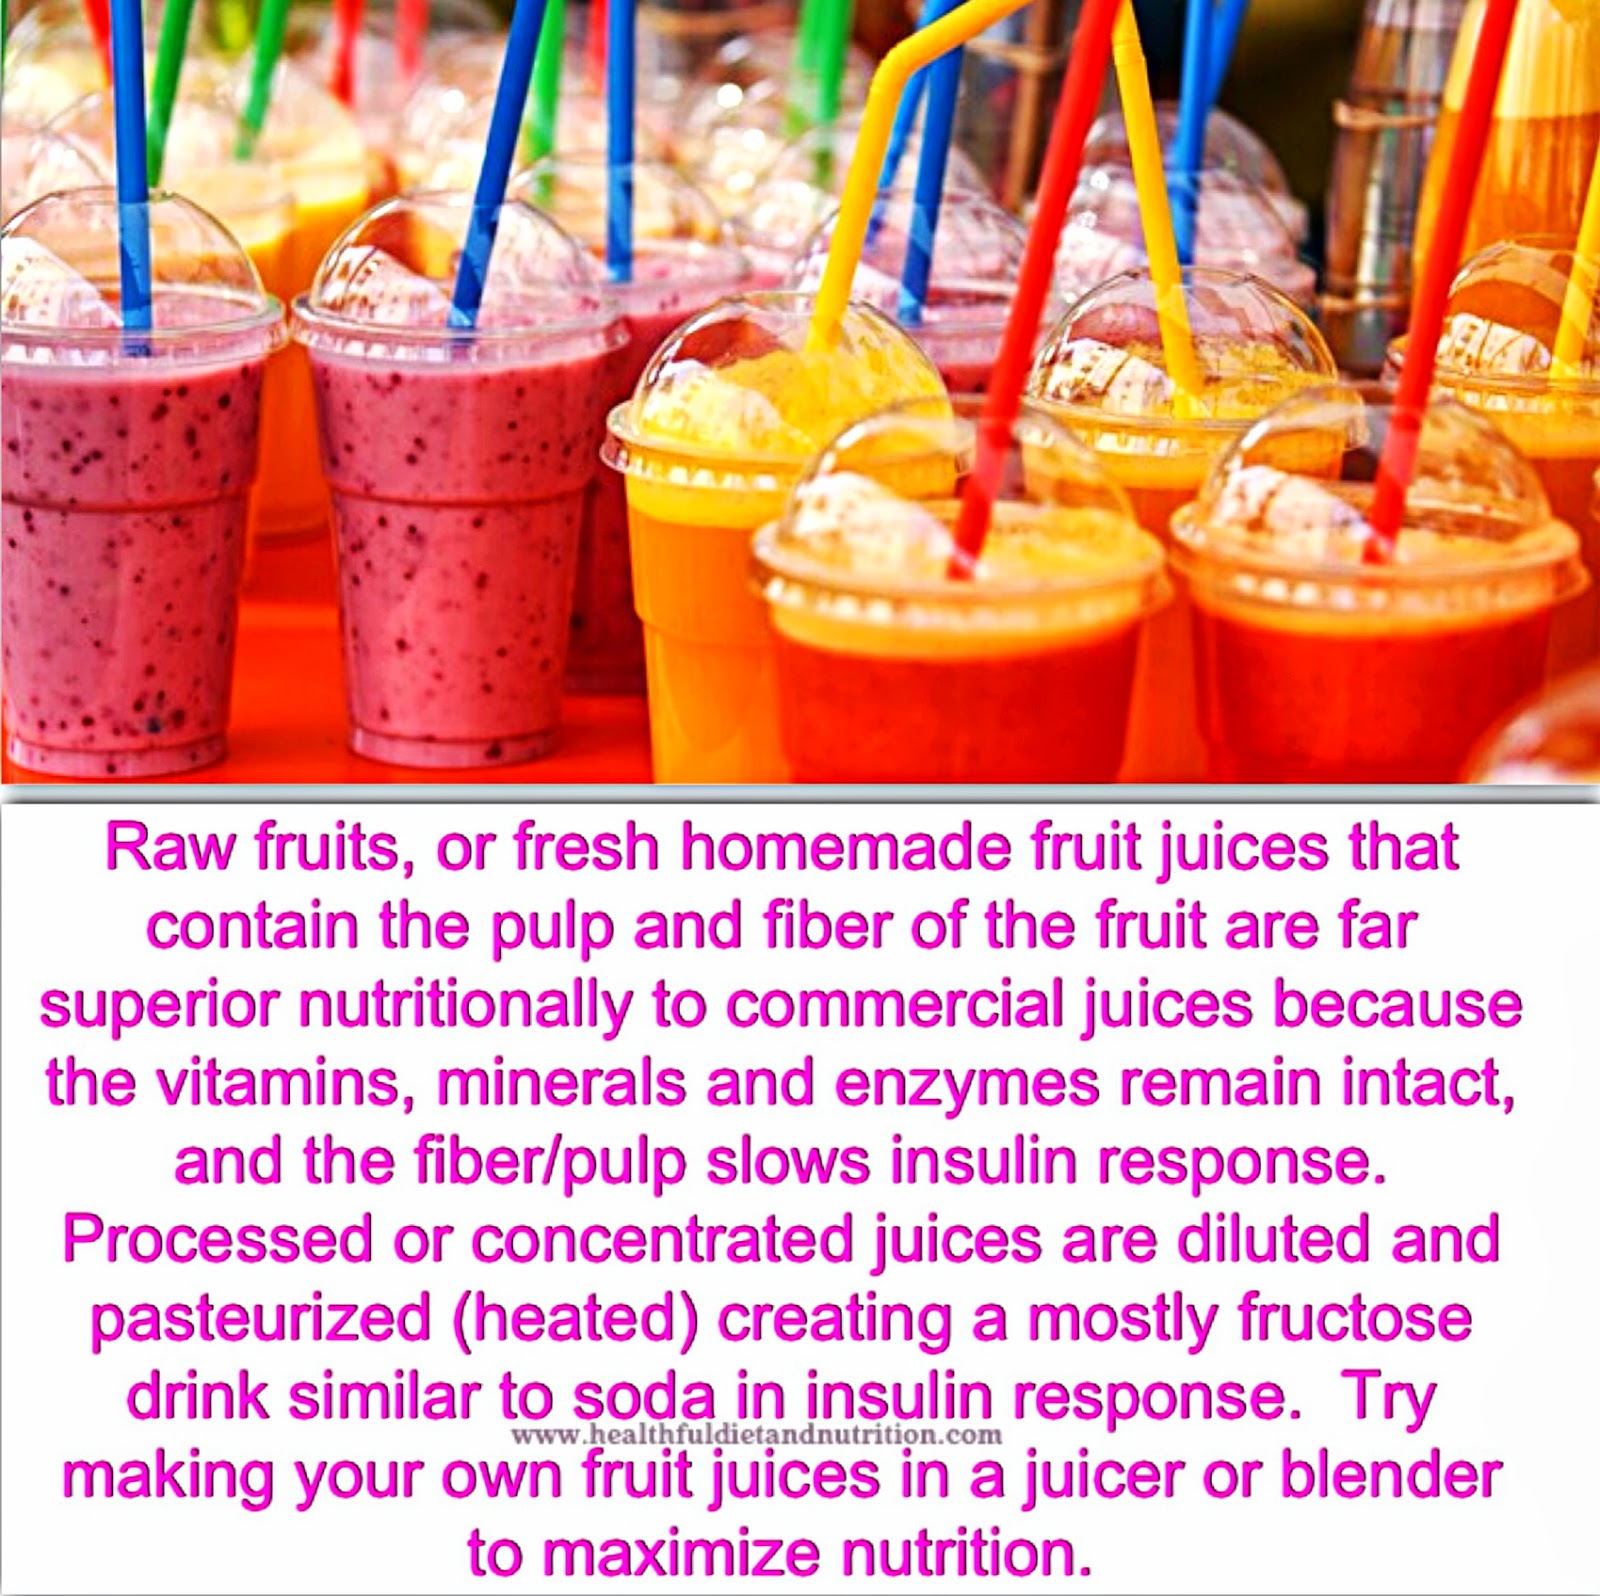 Make Your Own Fruit Juices To Maximize Health